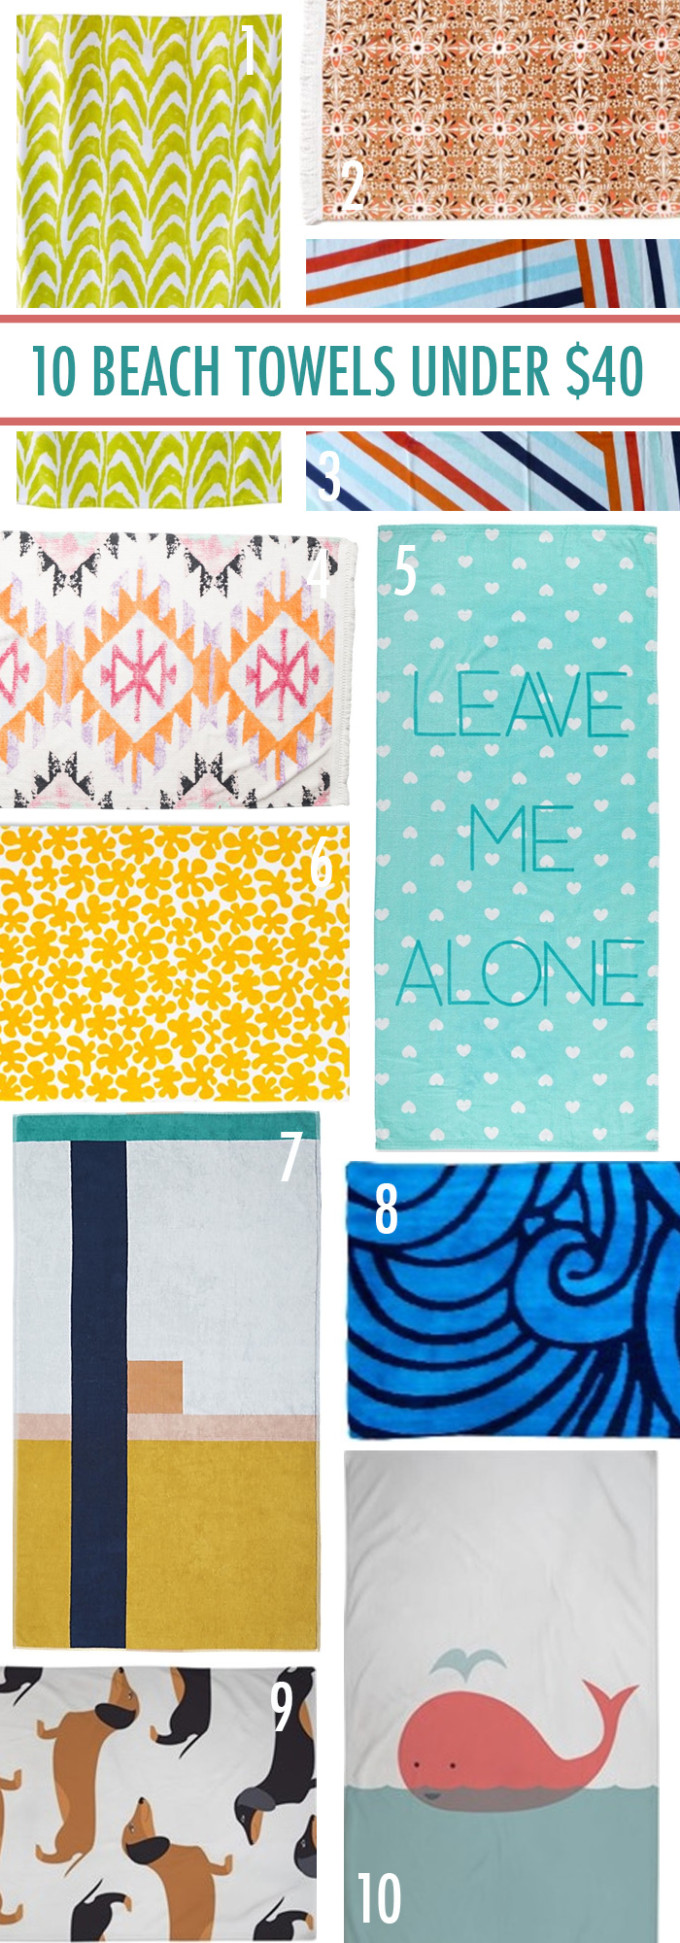 10 beach towels under $40 // www.thehiveblog.com